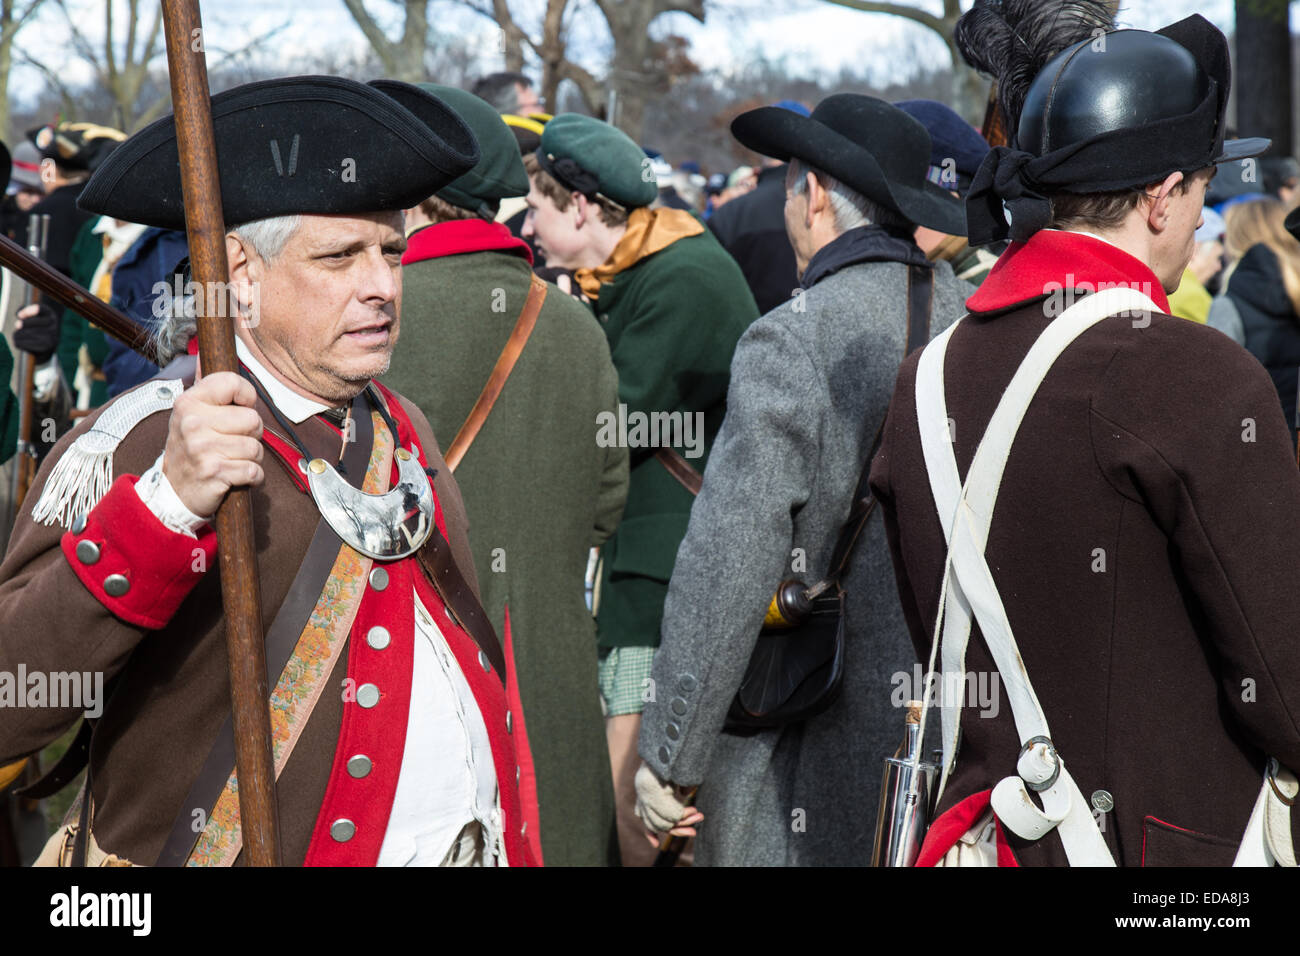 Reenactors at the annual General George Washington crossing the Delaware River from Pennsylvania into New Jersey on Christmas Da Stock Photo